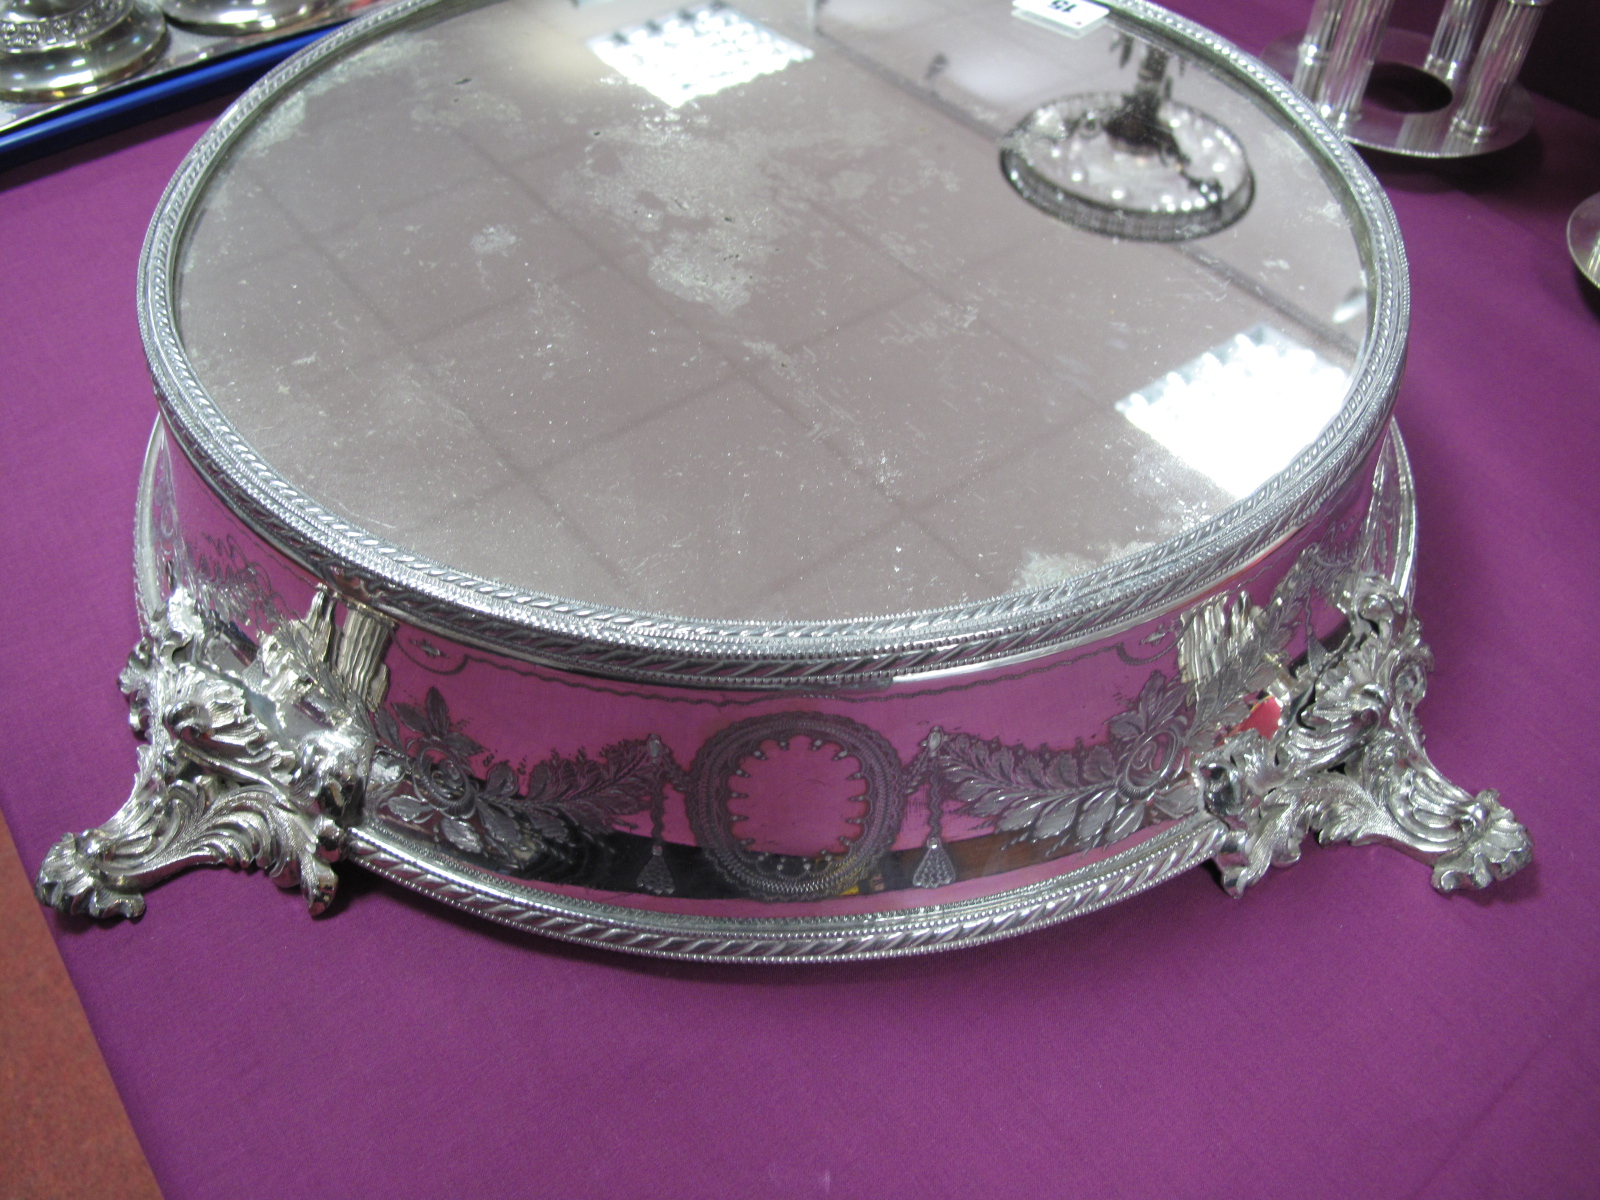 Lot 15 - A Late XIX / Early XX Century Plated Wedding Cake Stand, with mirrored plateau, within a ribbon tied